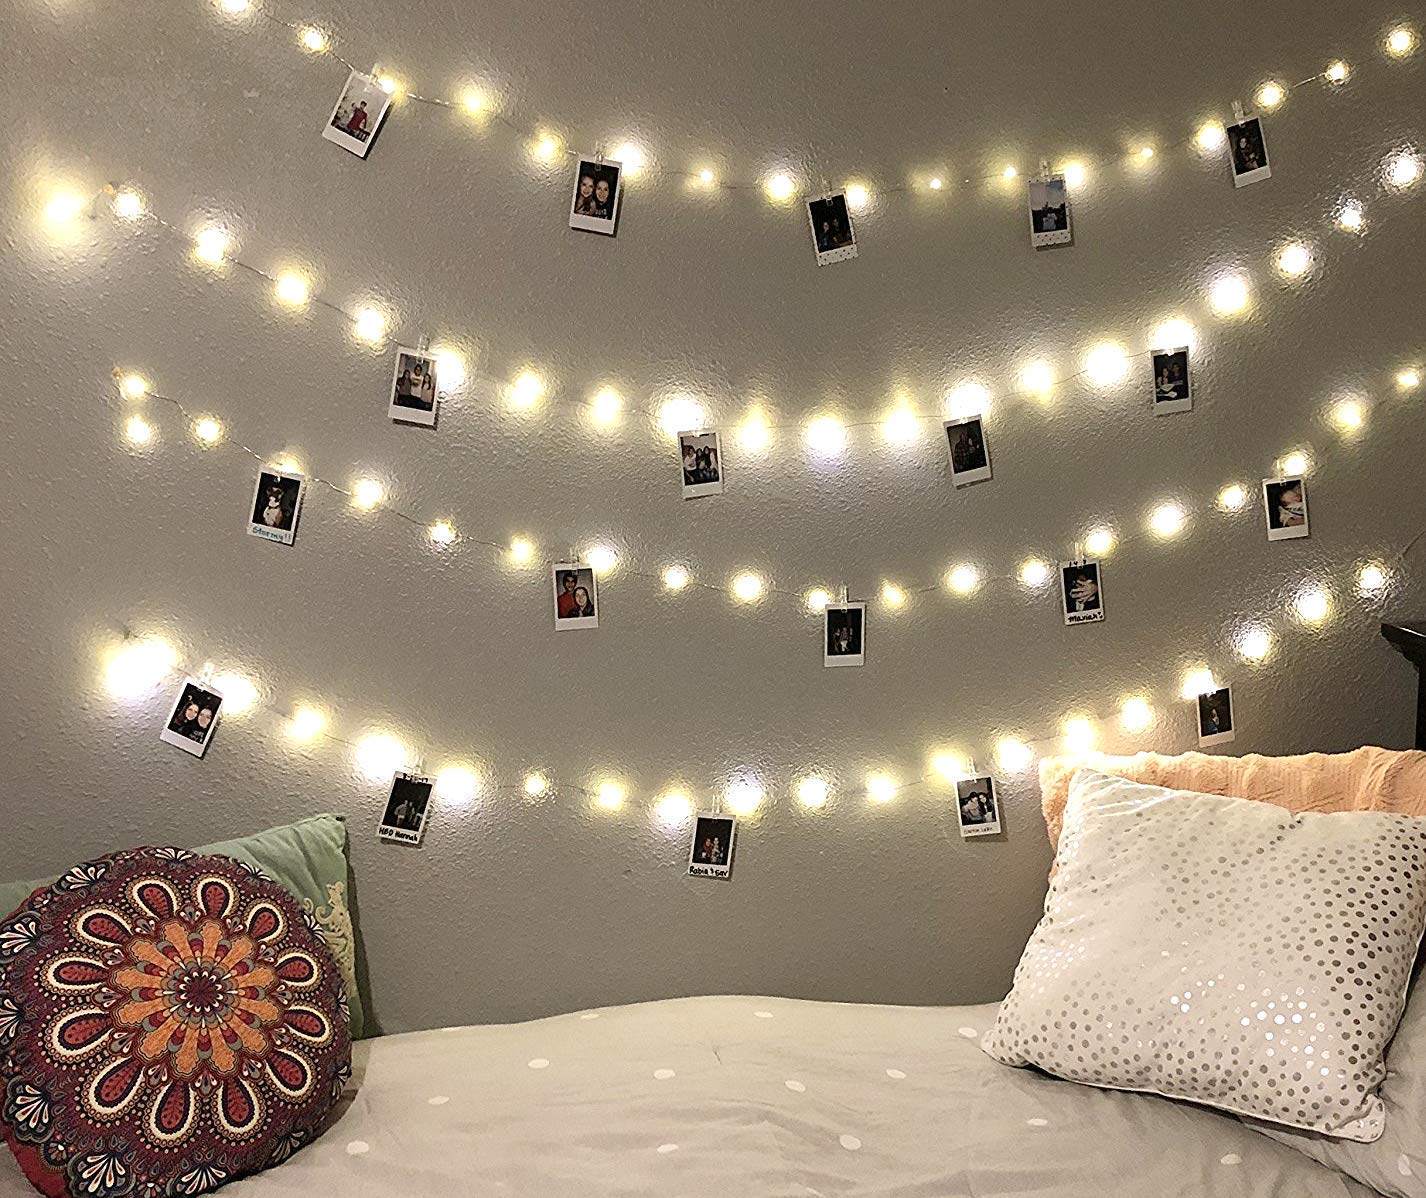 EZDC 20 LED Photo Clip String Lights, Bedroom Fairy Lights with Clips for Dorm Room or Bedroom Decoration to Hang Cards, Polaroids & Pictures